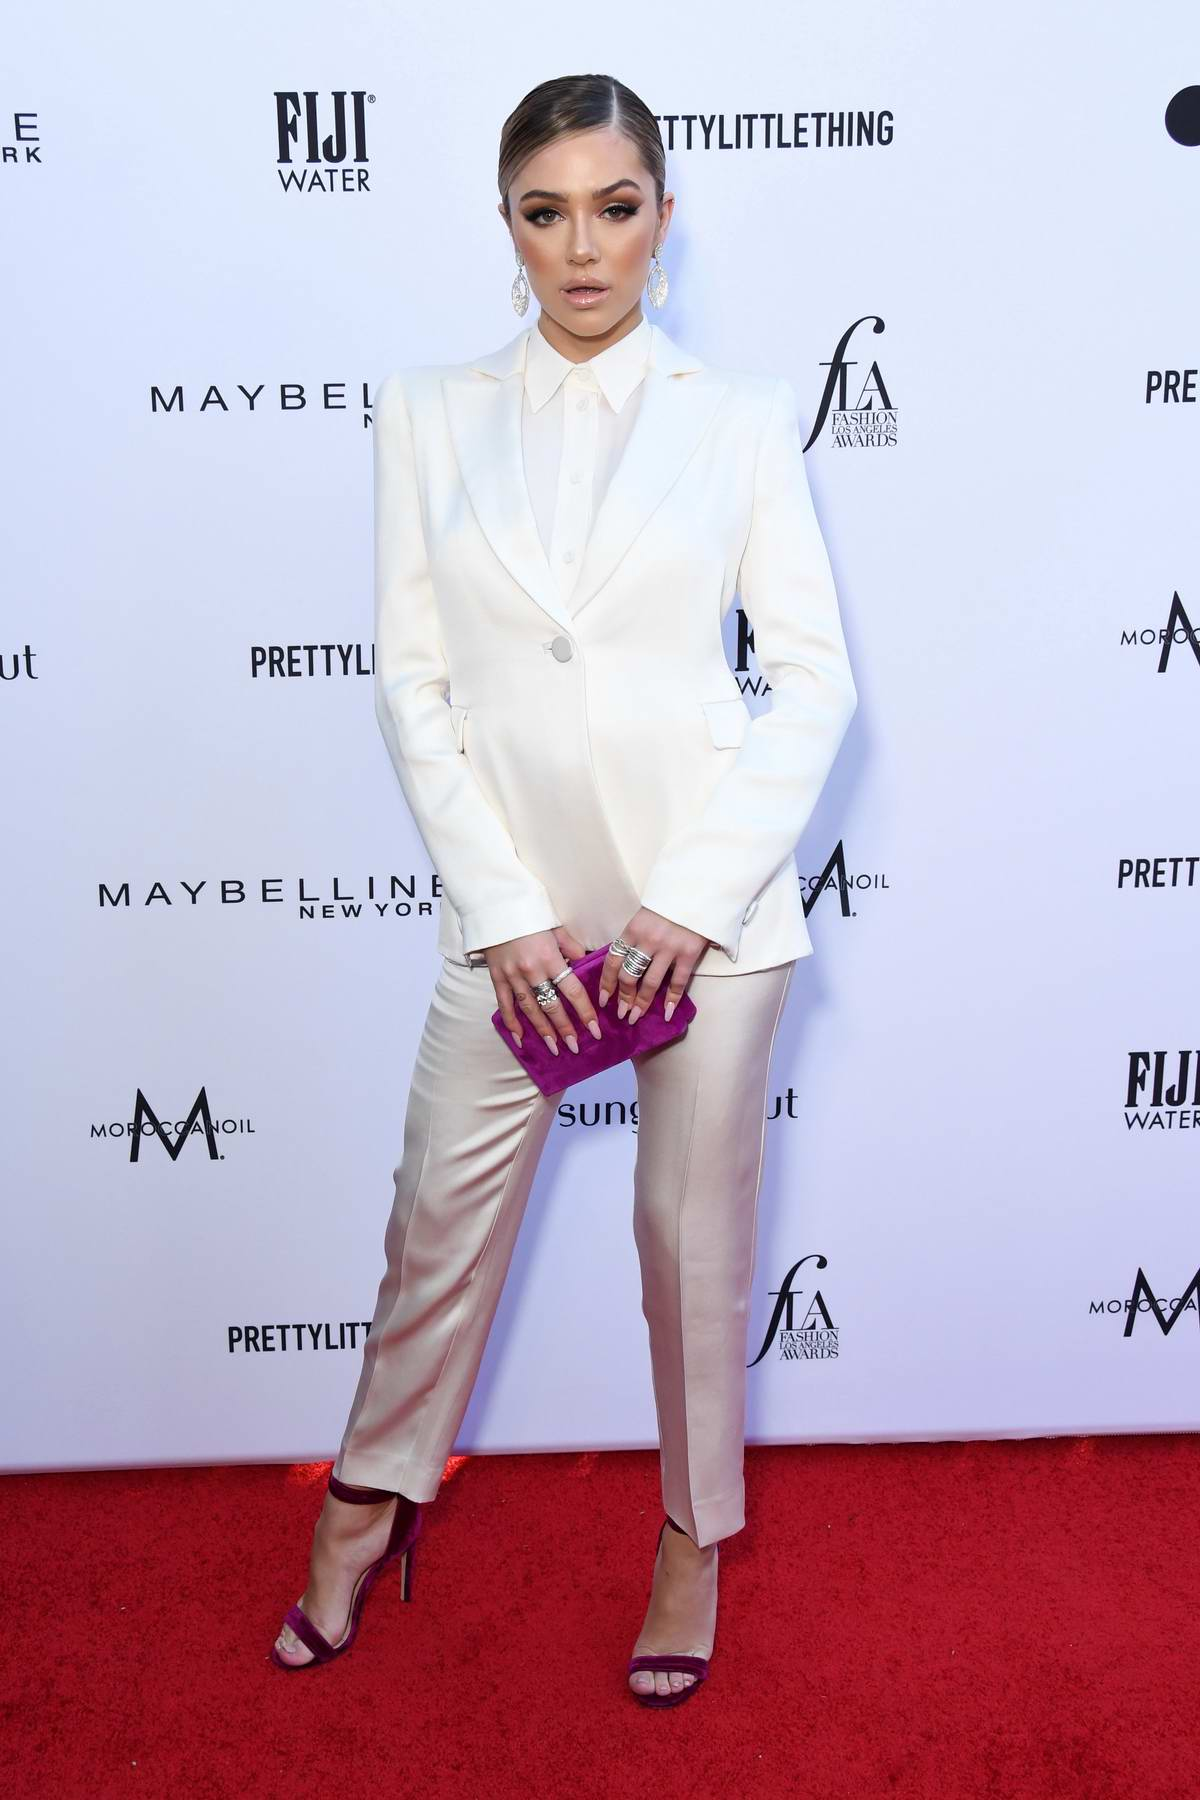 Delilah Belle Hamlin attends The Daily Front Row's 5th Annual Fashion Awards 2019 at The Beverly Hills Hotel in Los Angeles